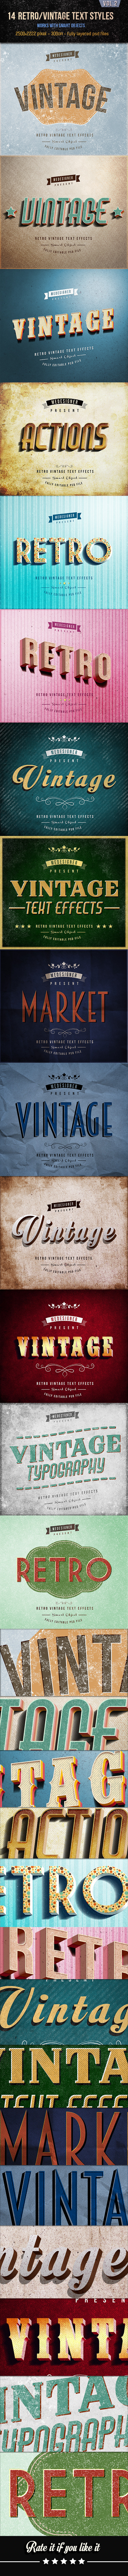 14 Retro Vintage Text Effects V.2